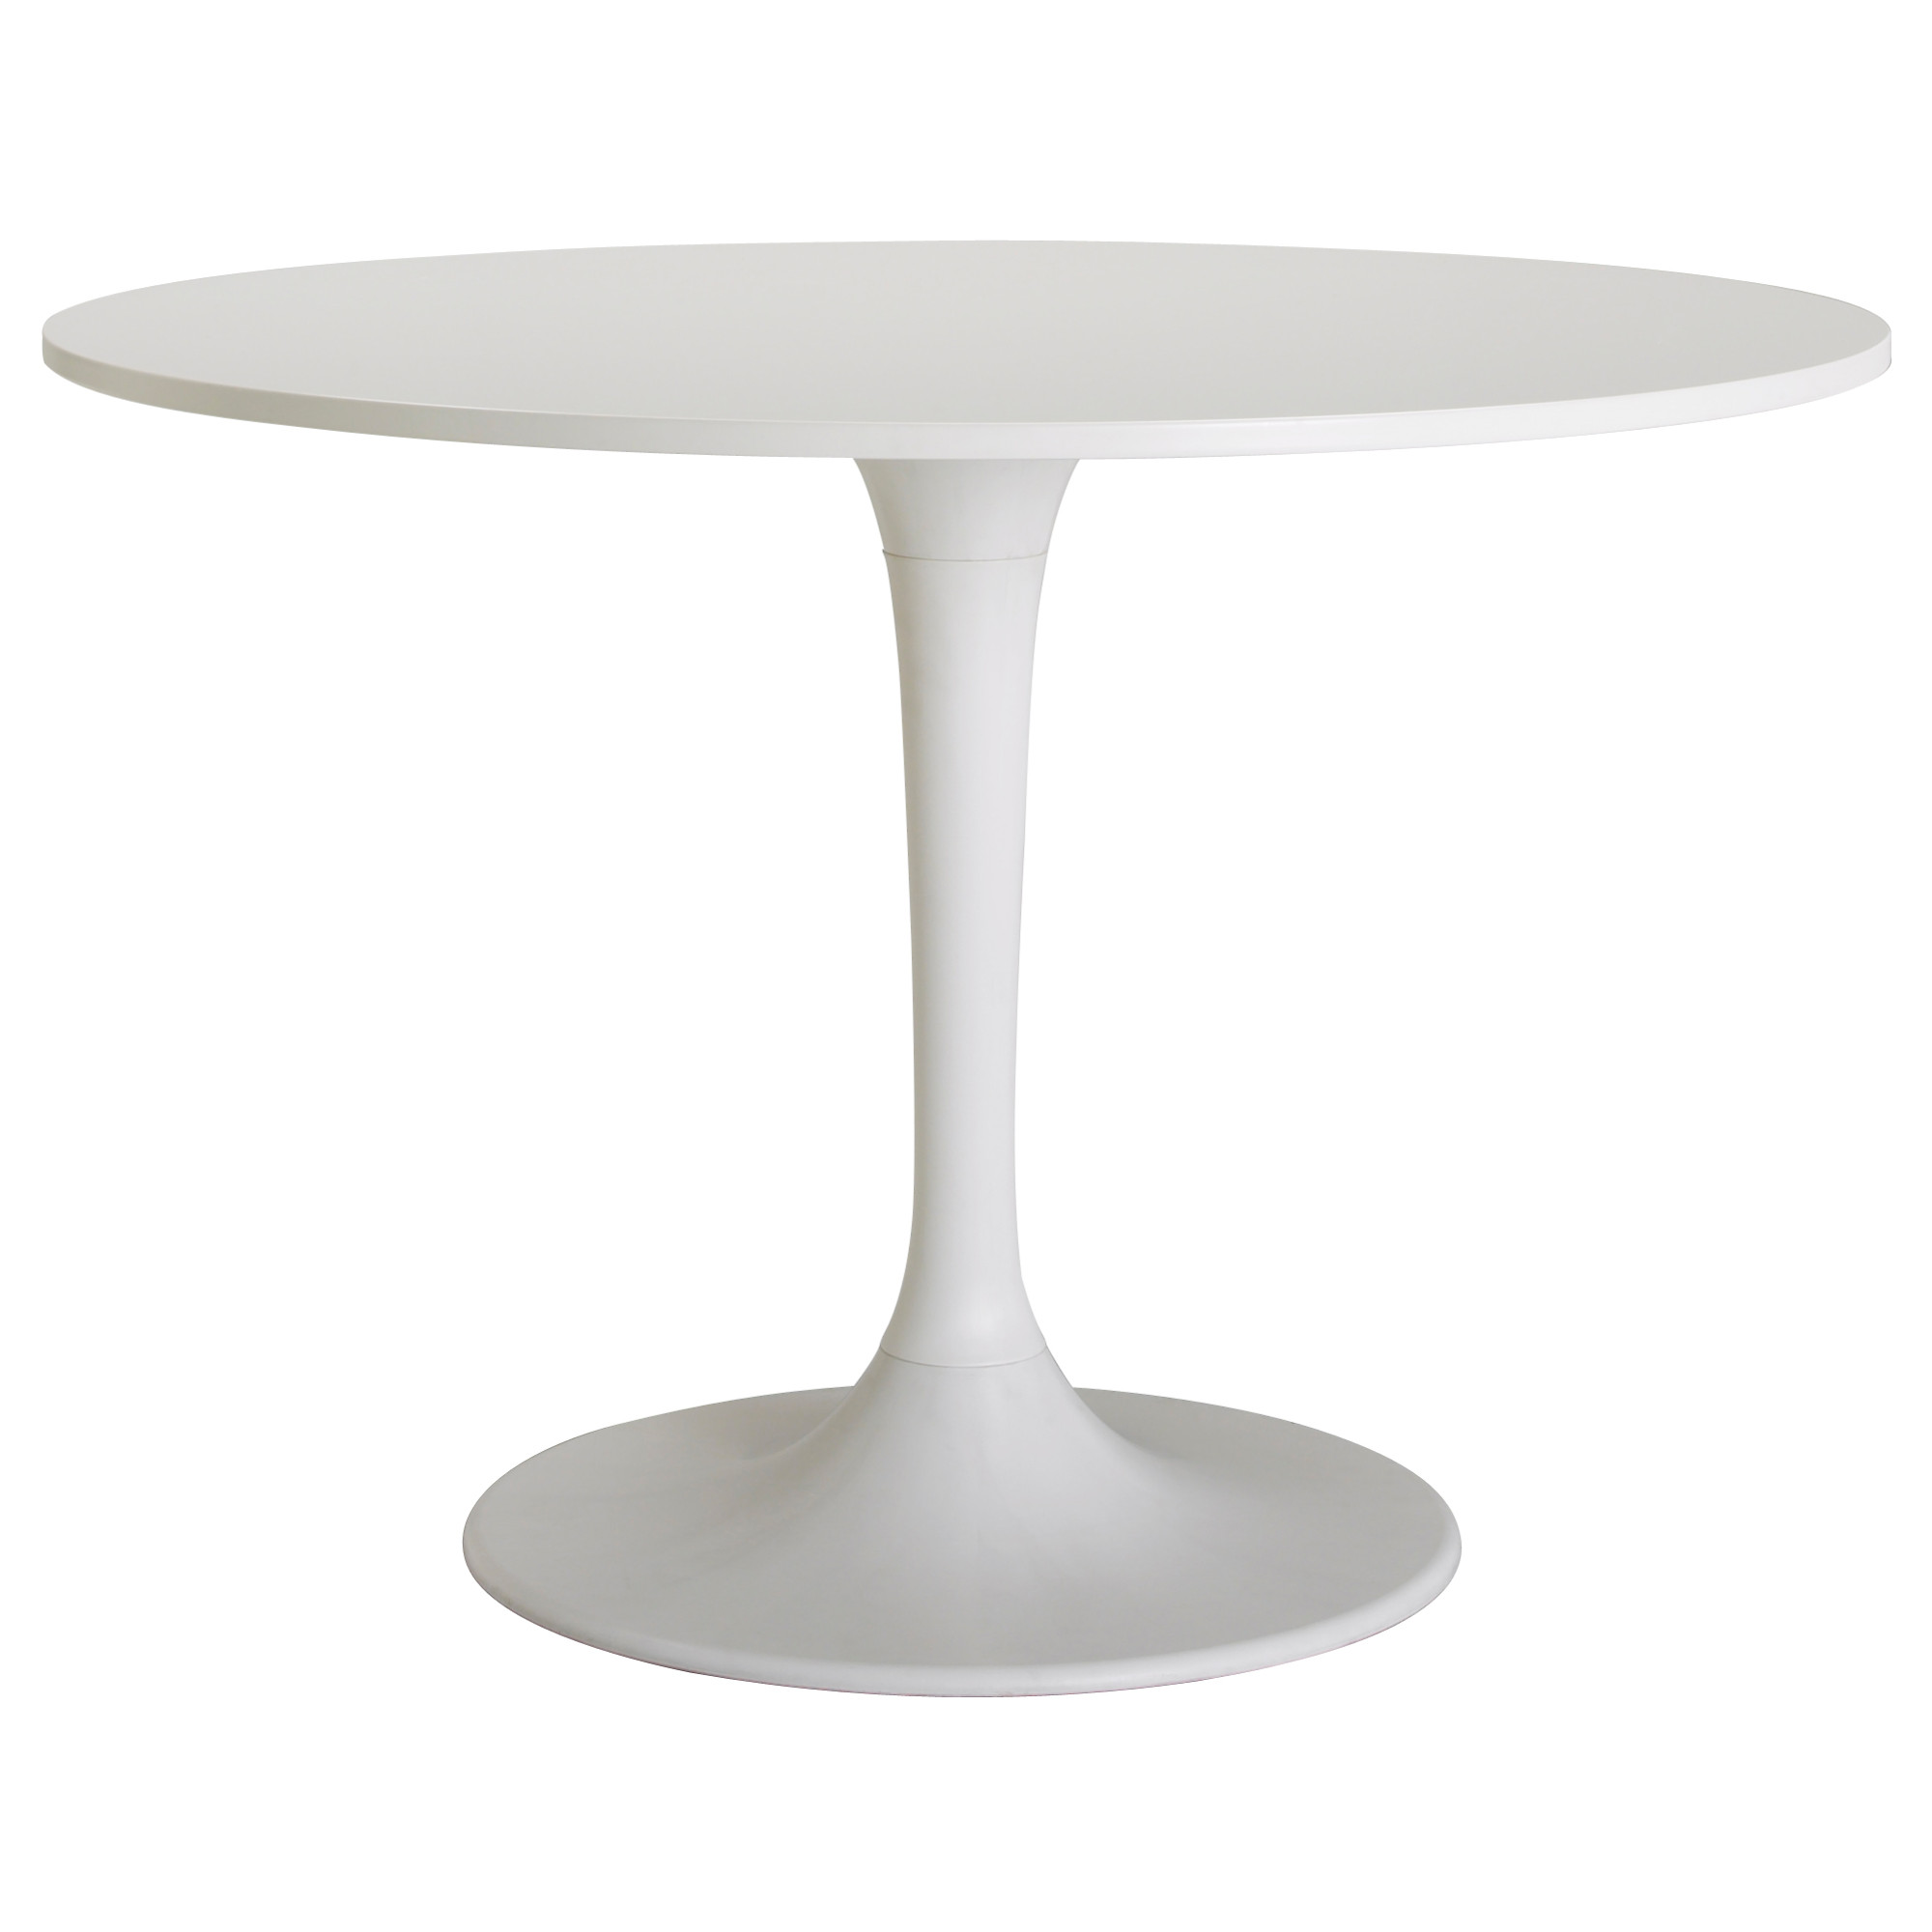 Round White Dining Tables: Beautiful White Round Kitchen Table And Chairs